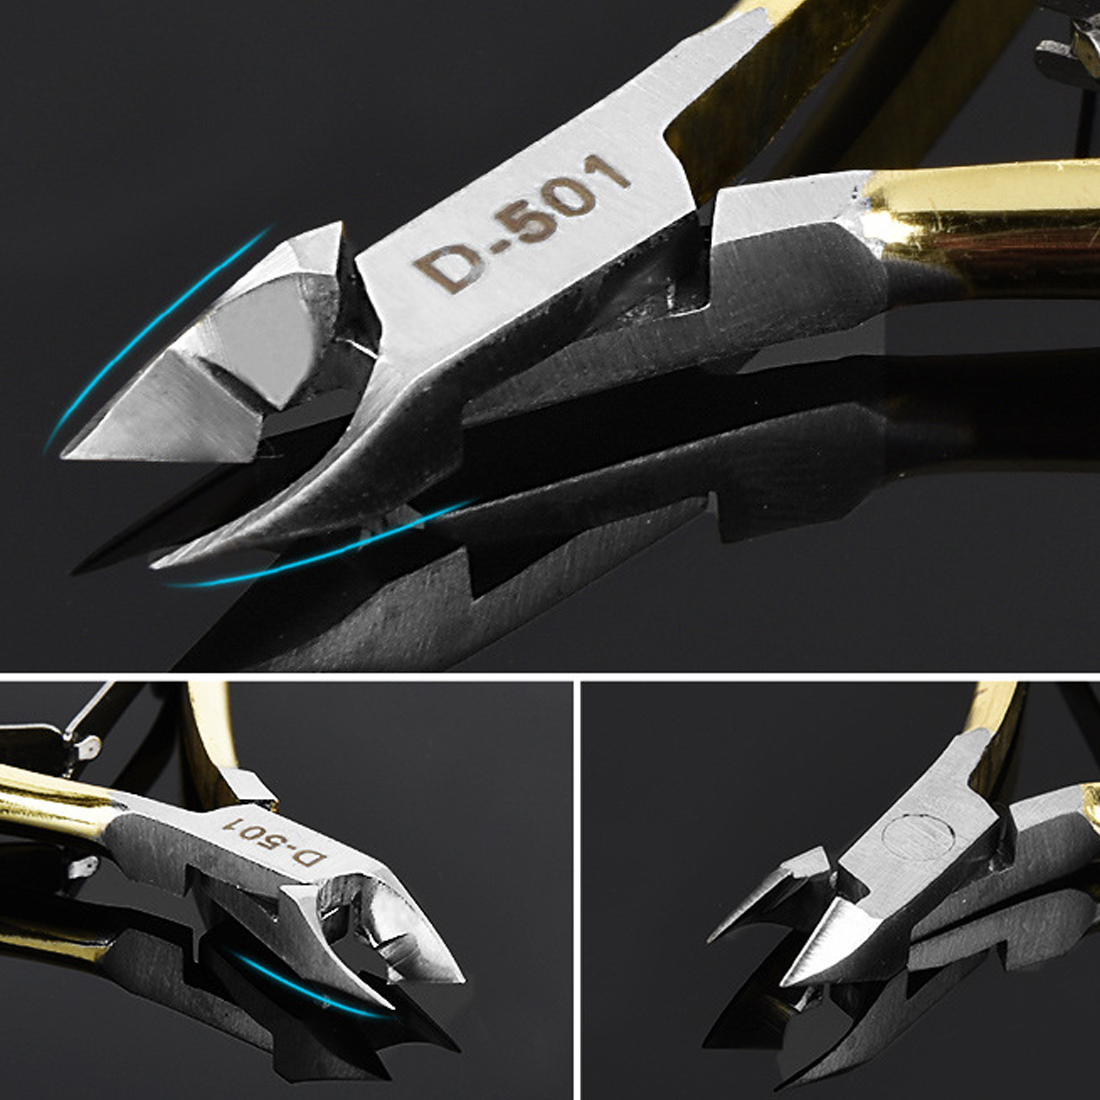 Pedicure Manicure Pliers Nail Dung Inlaid Oblique Nail Scissors Dead Skin Cut Nail Horny Pliers Stainless Steel Nail Clippers